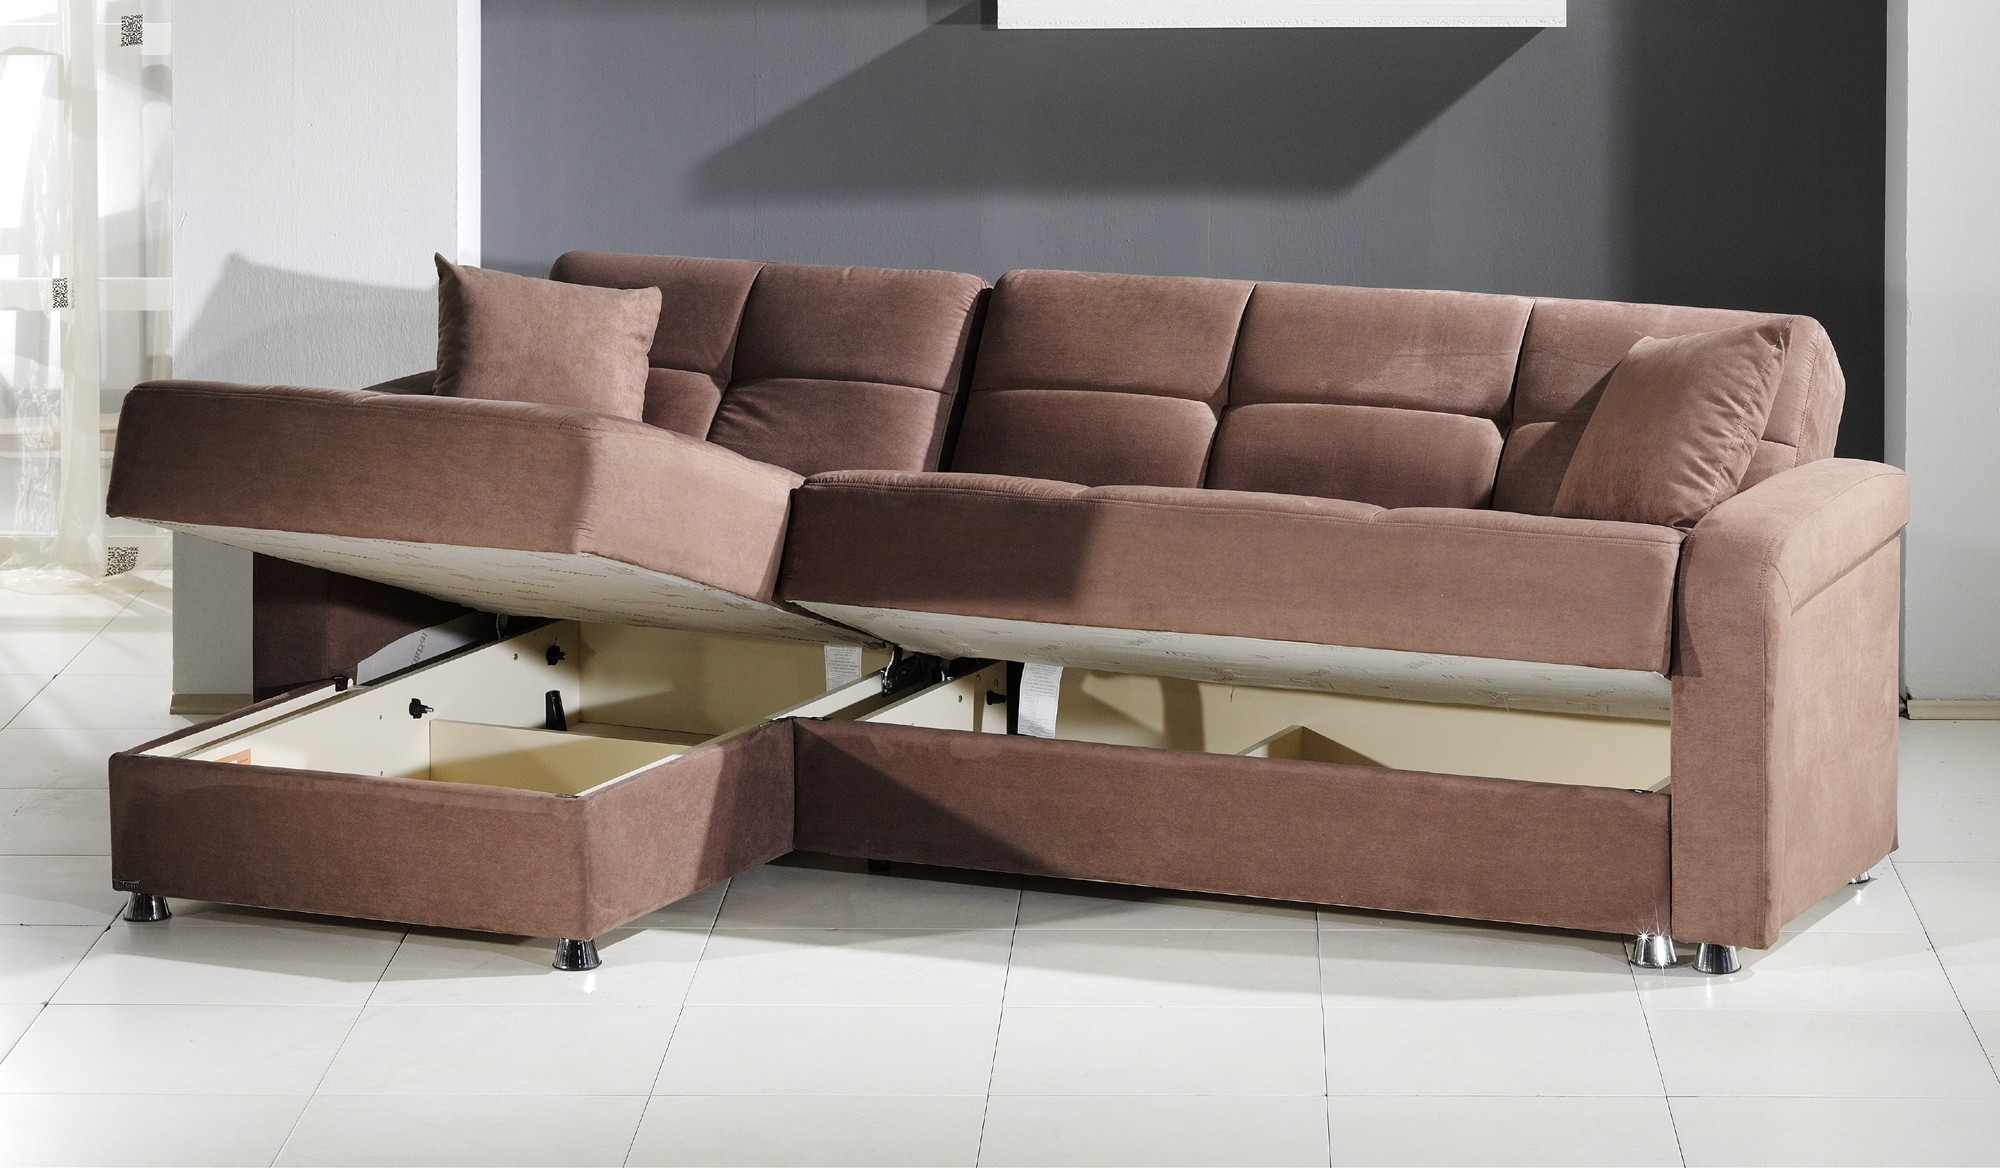 Best And Newest Vision Convertible Sectional Sofa In Rainbow Truffleistikbal Pertaining To Convertible Sectional Sofas (View 6 of 20)